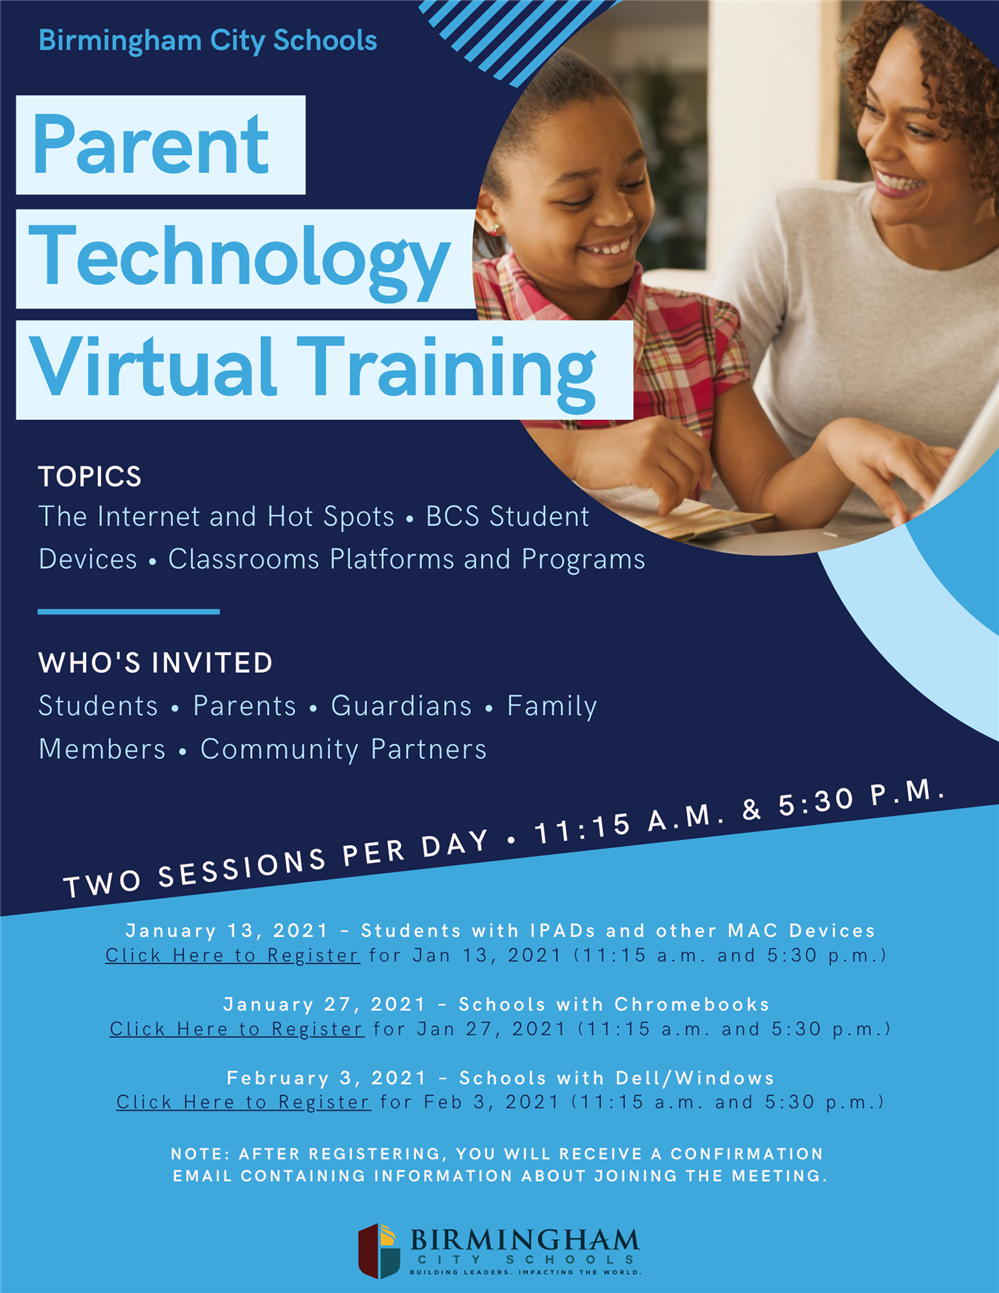 Parent Technology Virtual Training Flyer